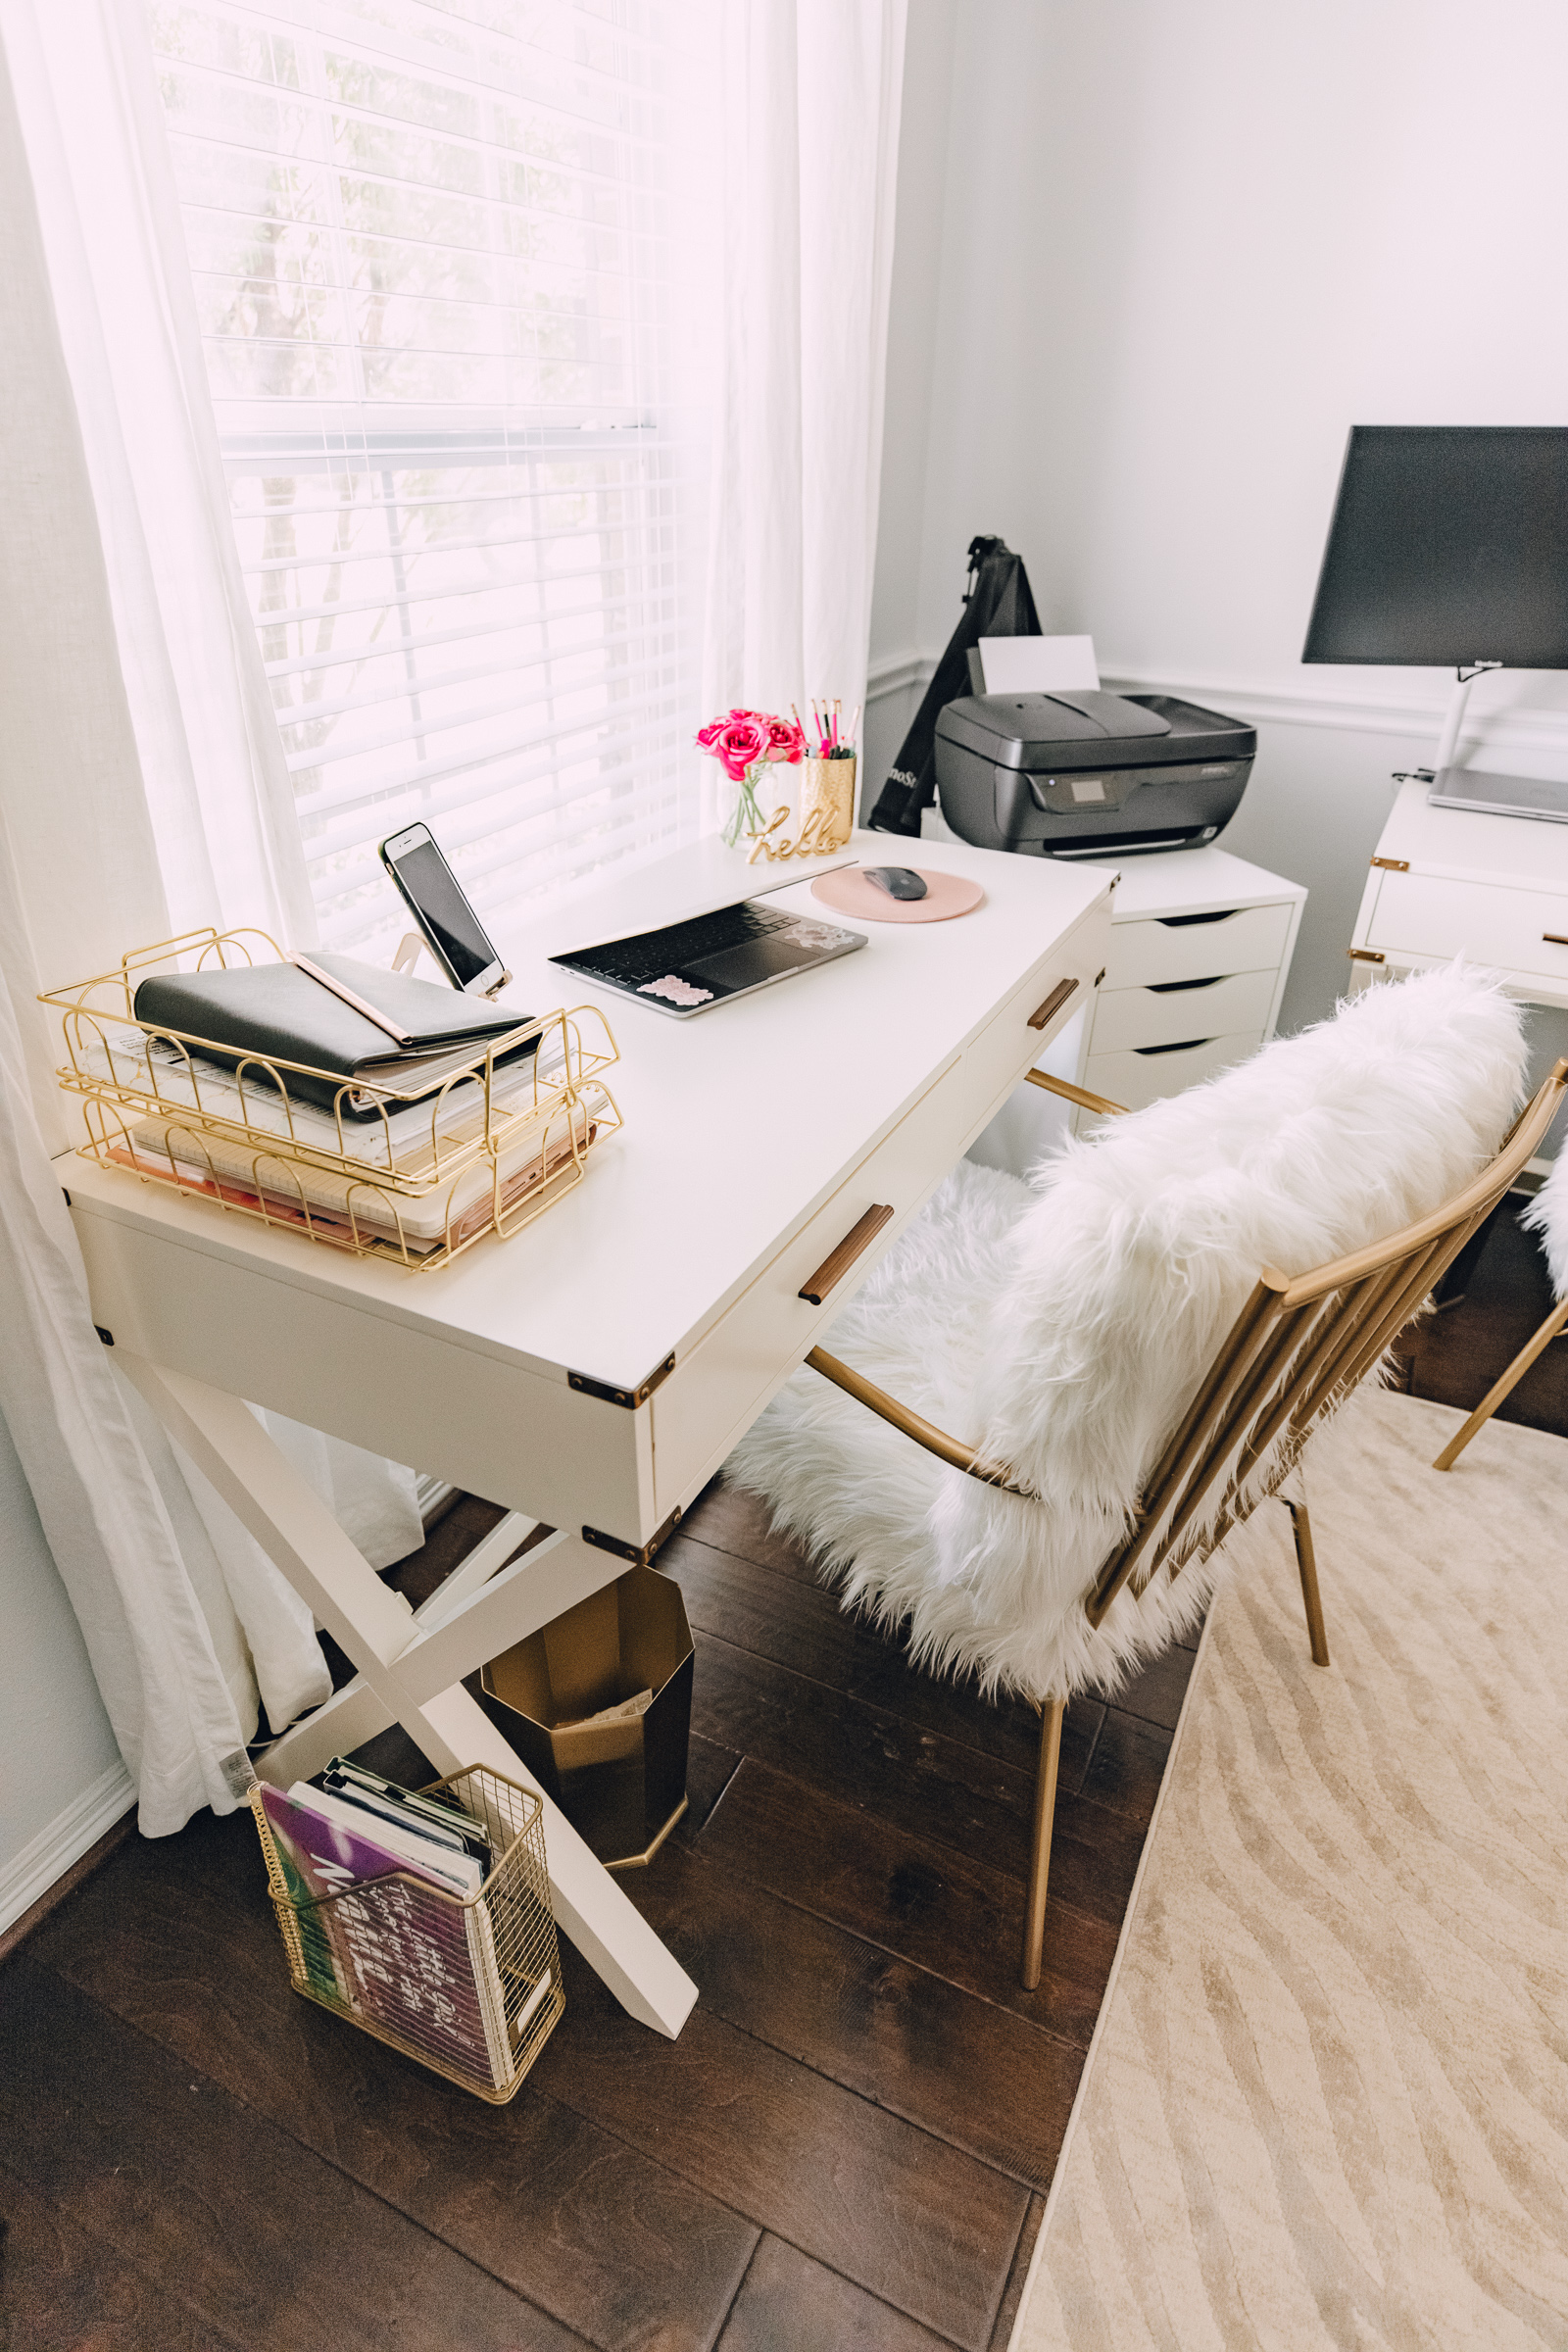 Houston blogger Elly Brown shares her shared office decor and office desk from CosmoLiving